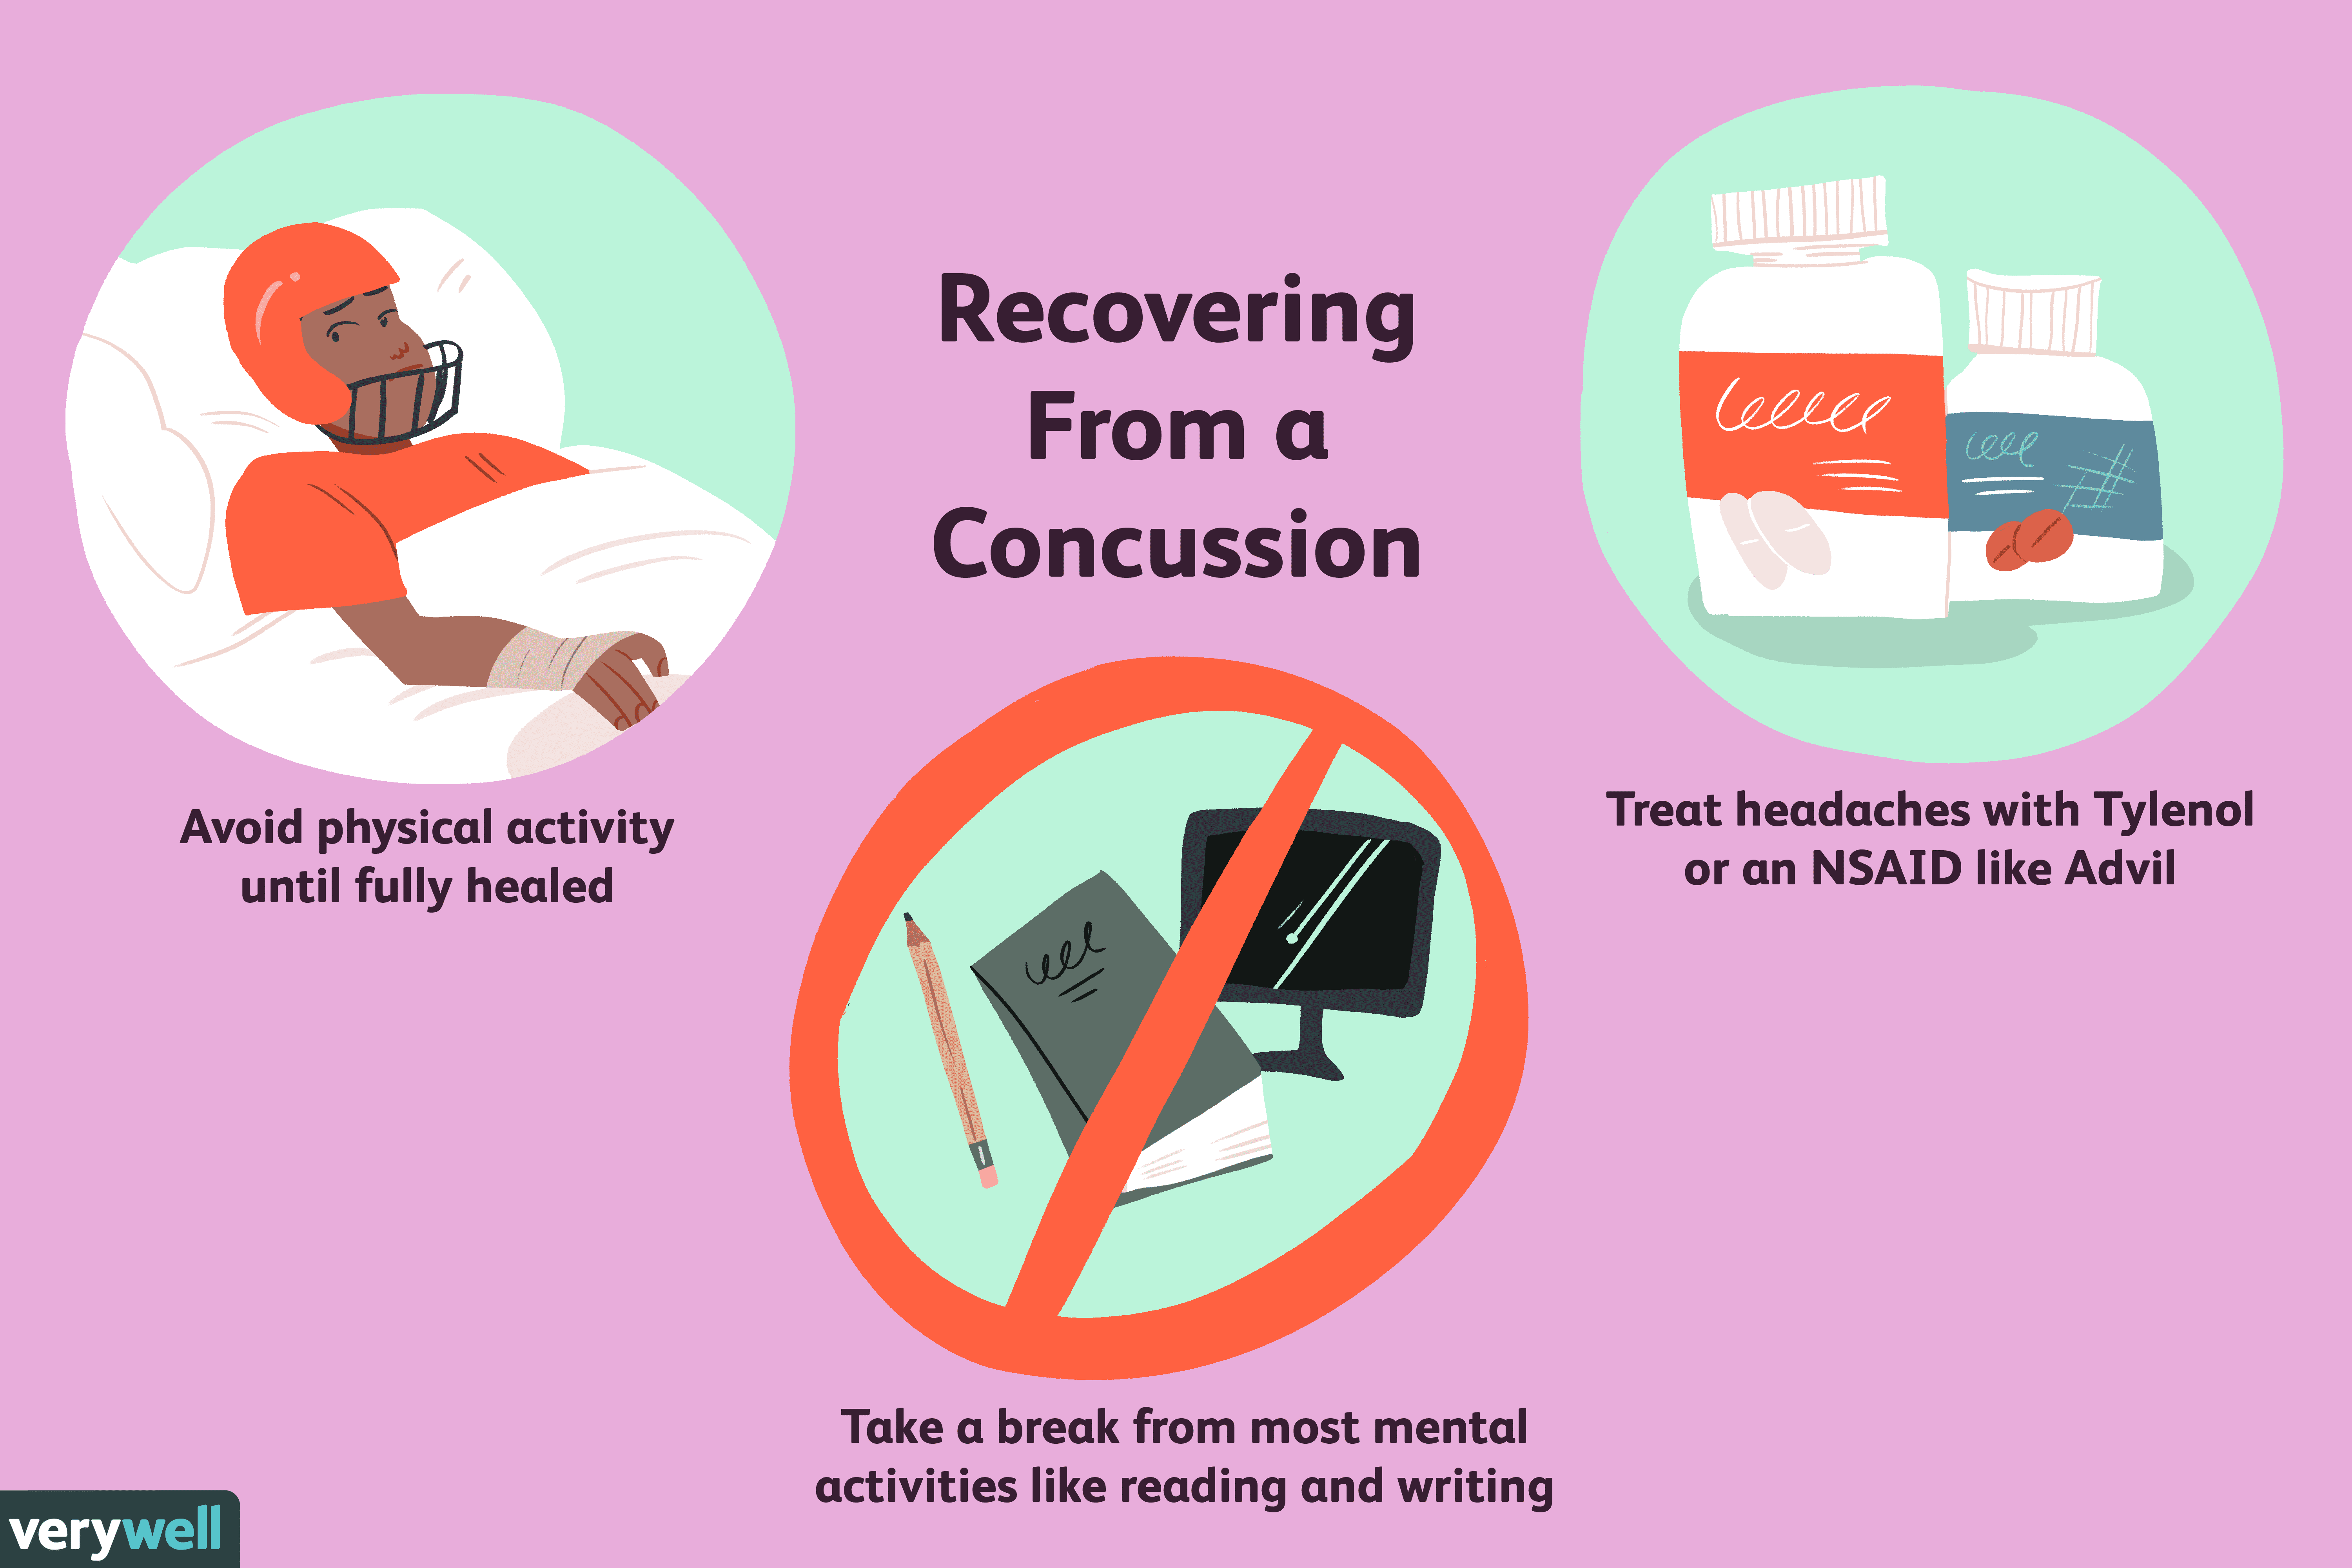 Treating a Concussion